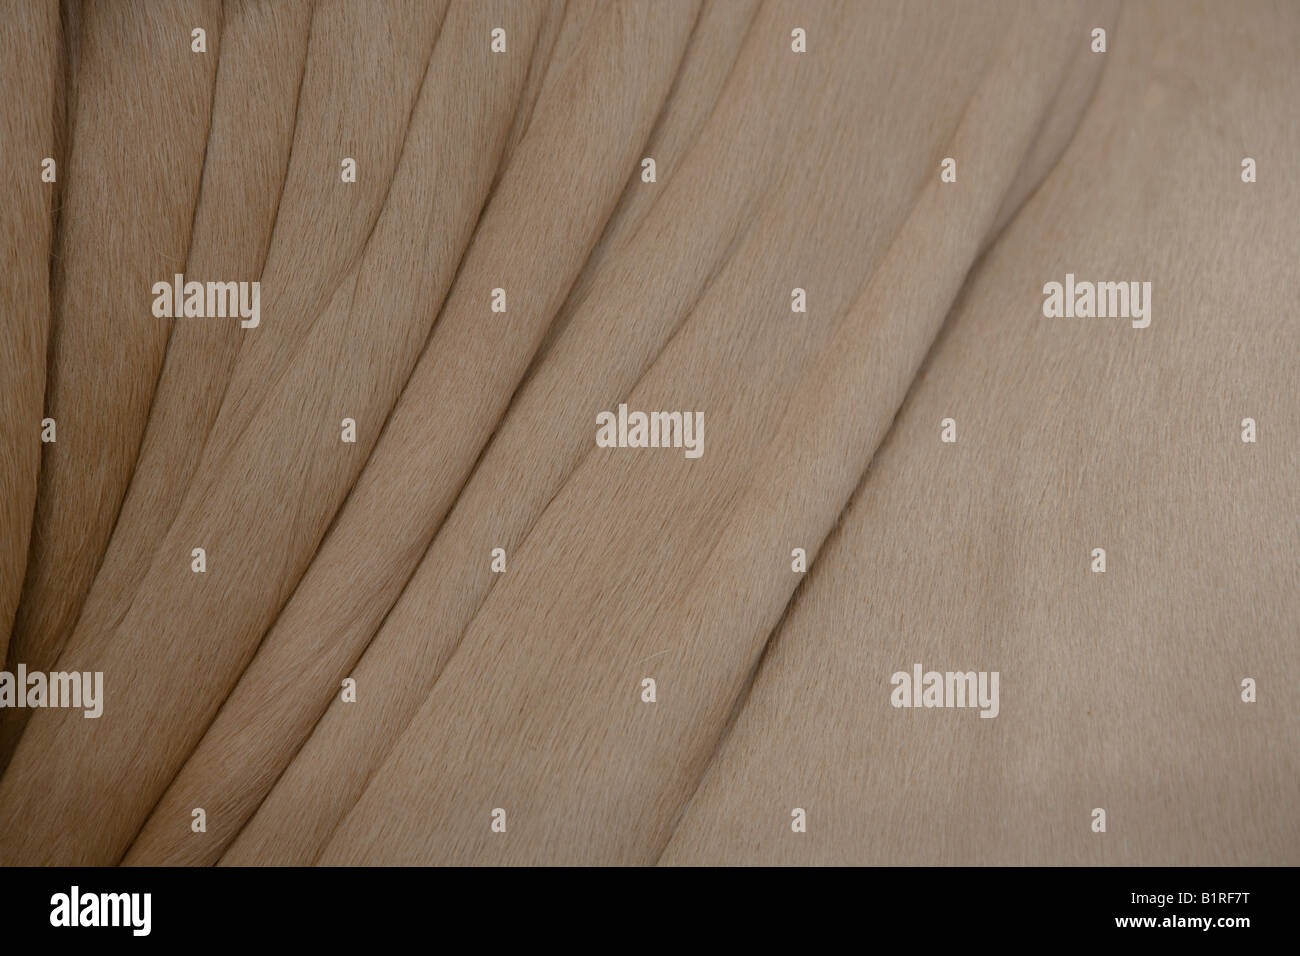 Folds in the skin of the neck and body of a Blond D Aqutaine breed of cattle - Stock Image